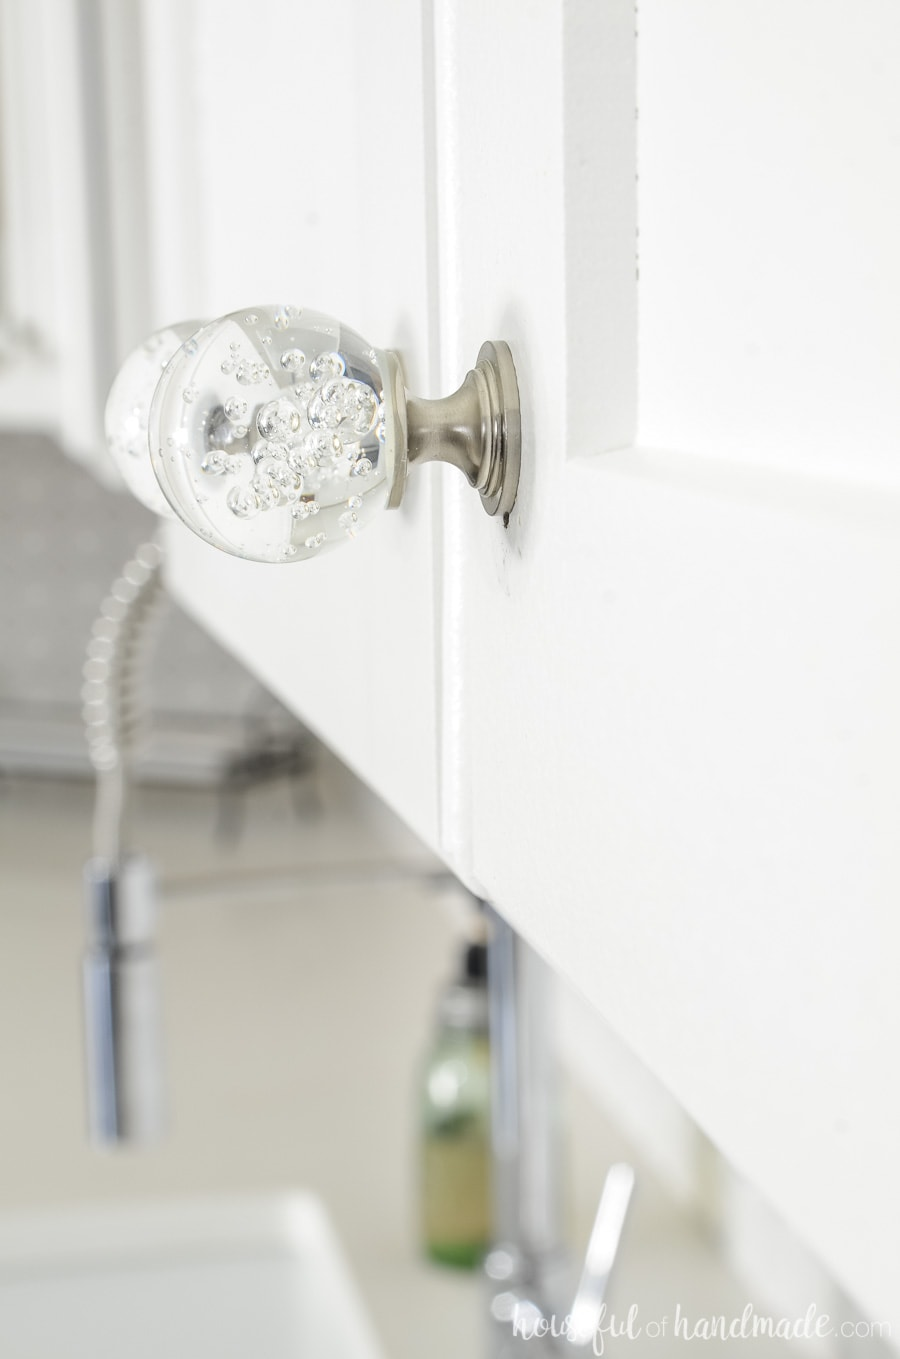 Add a little glam to your kitchen with these bubble glass knobs. The bubbles add sparkle to a modern farmhouse kitchen. Housefulofhandmade.com